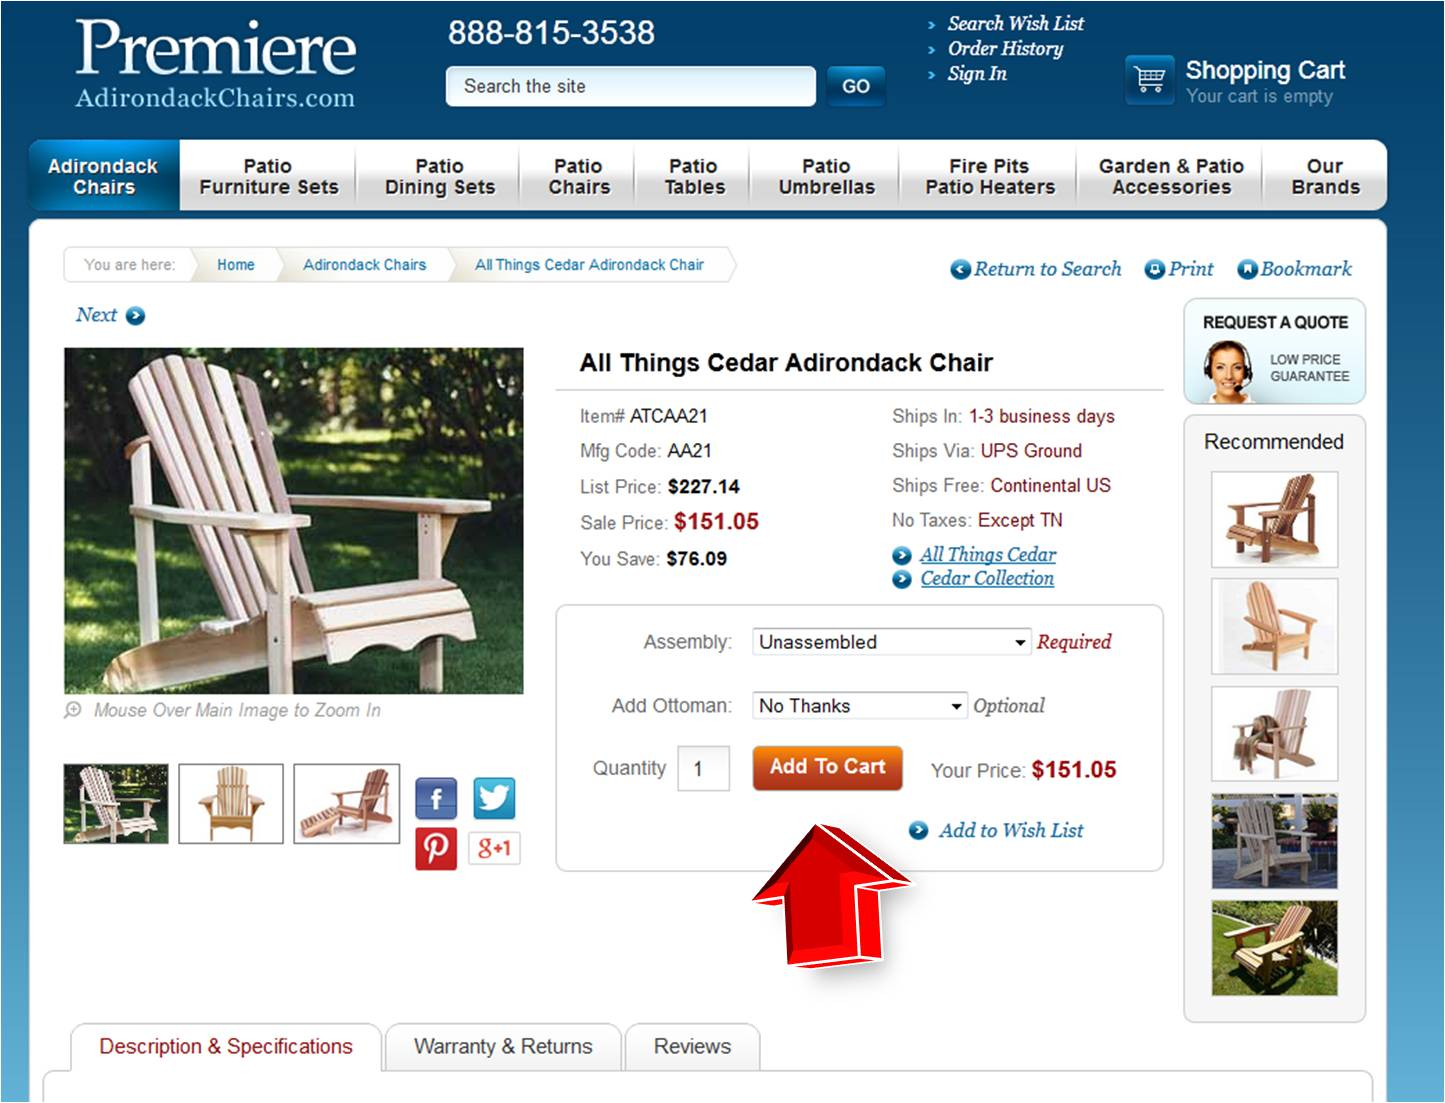 adirondack chat sites Find a great selection of adirondack chairs and sets at nfm shop for great deals on adirondack chairs and sets and other patio furniture products.